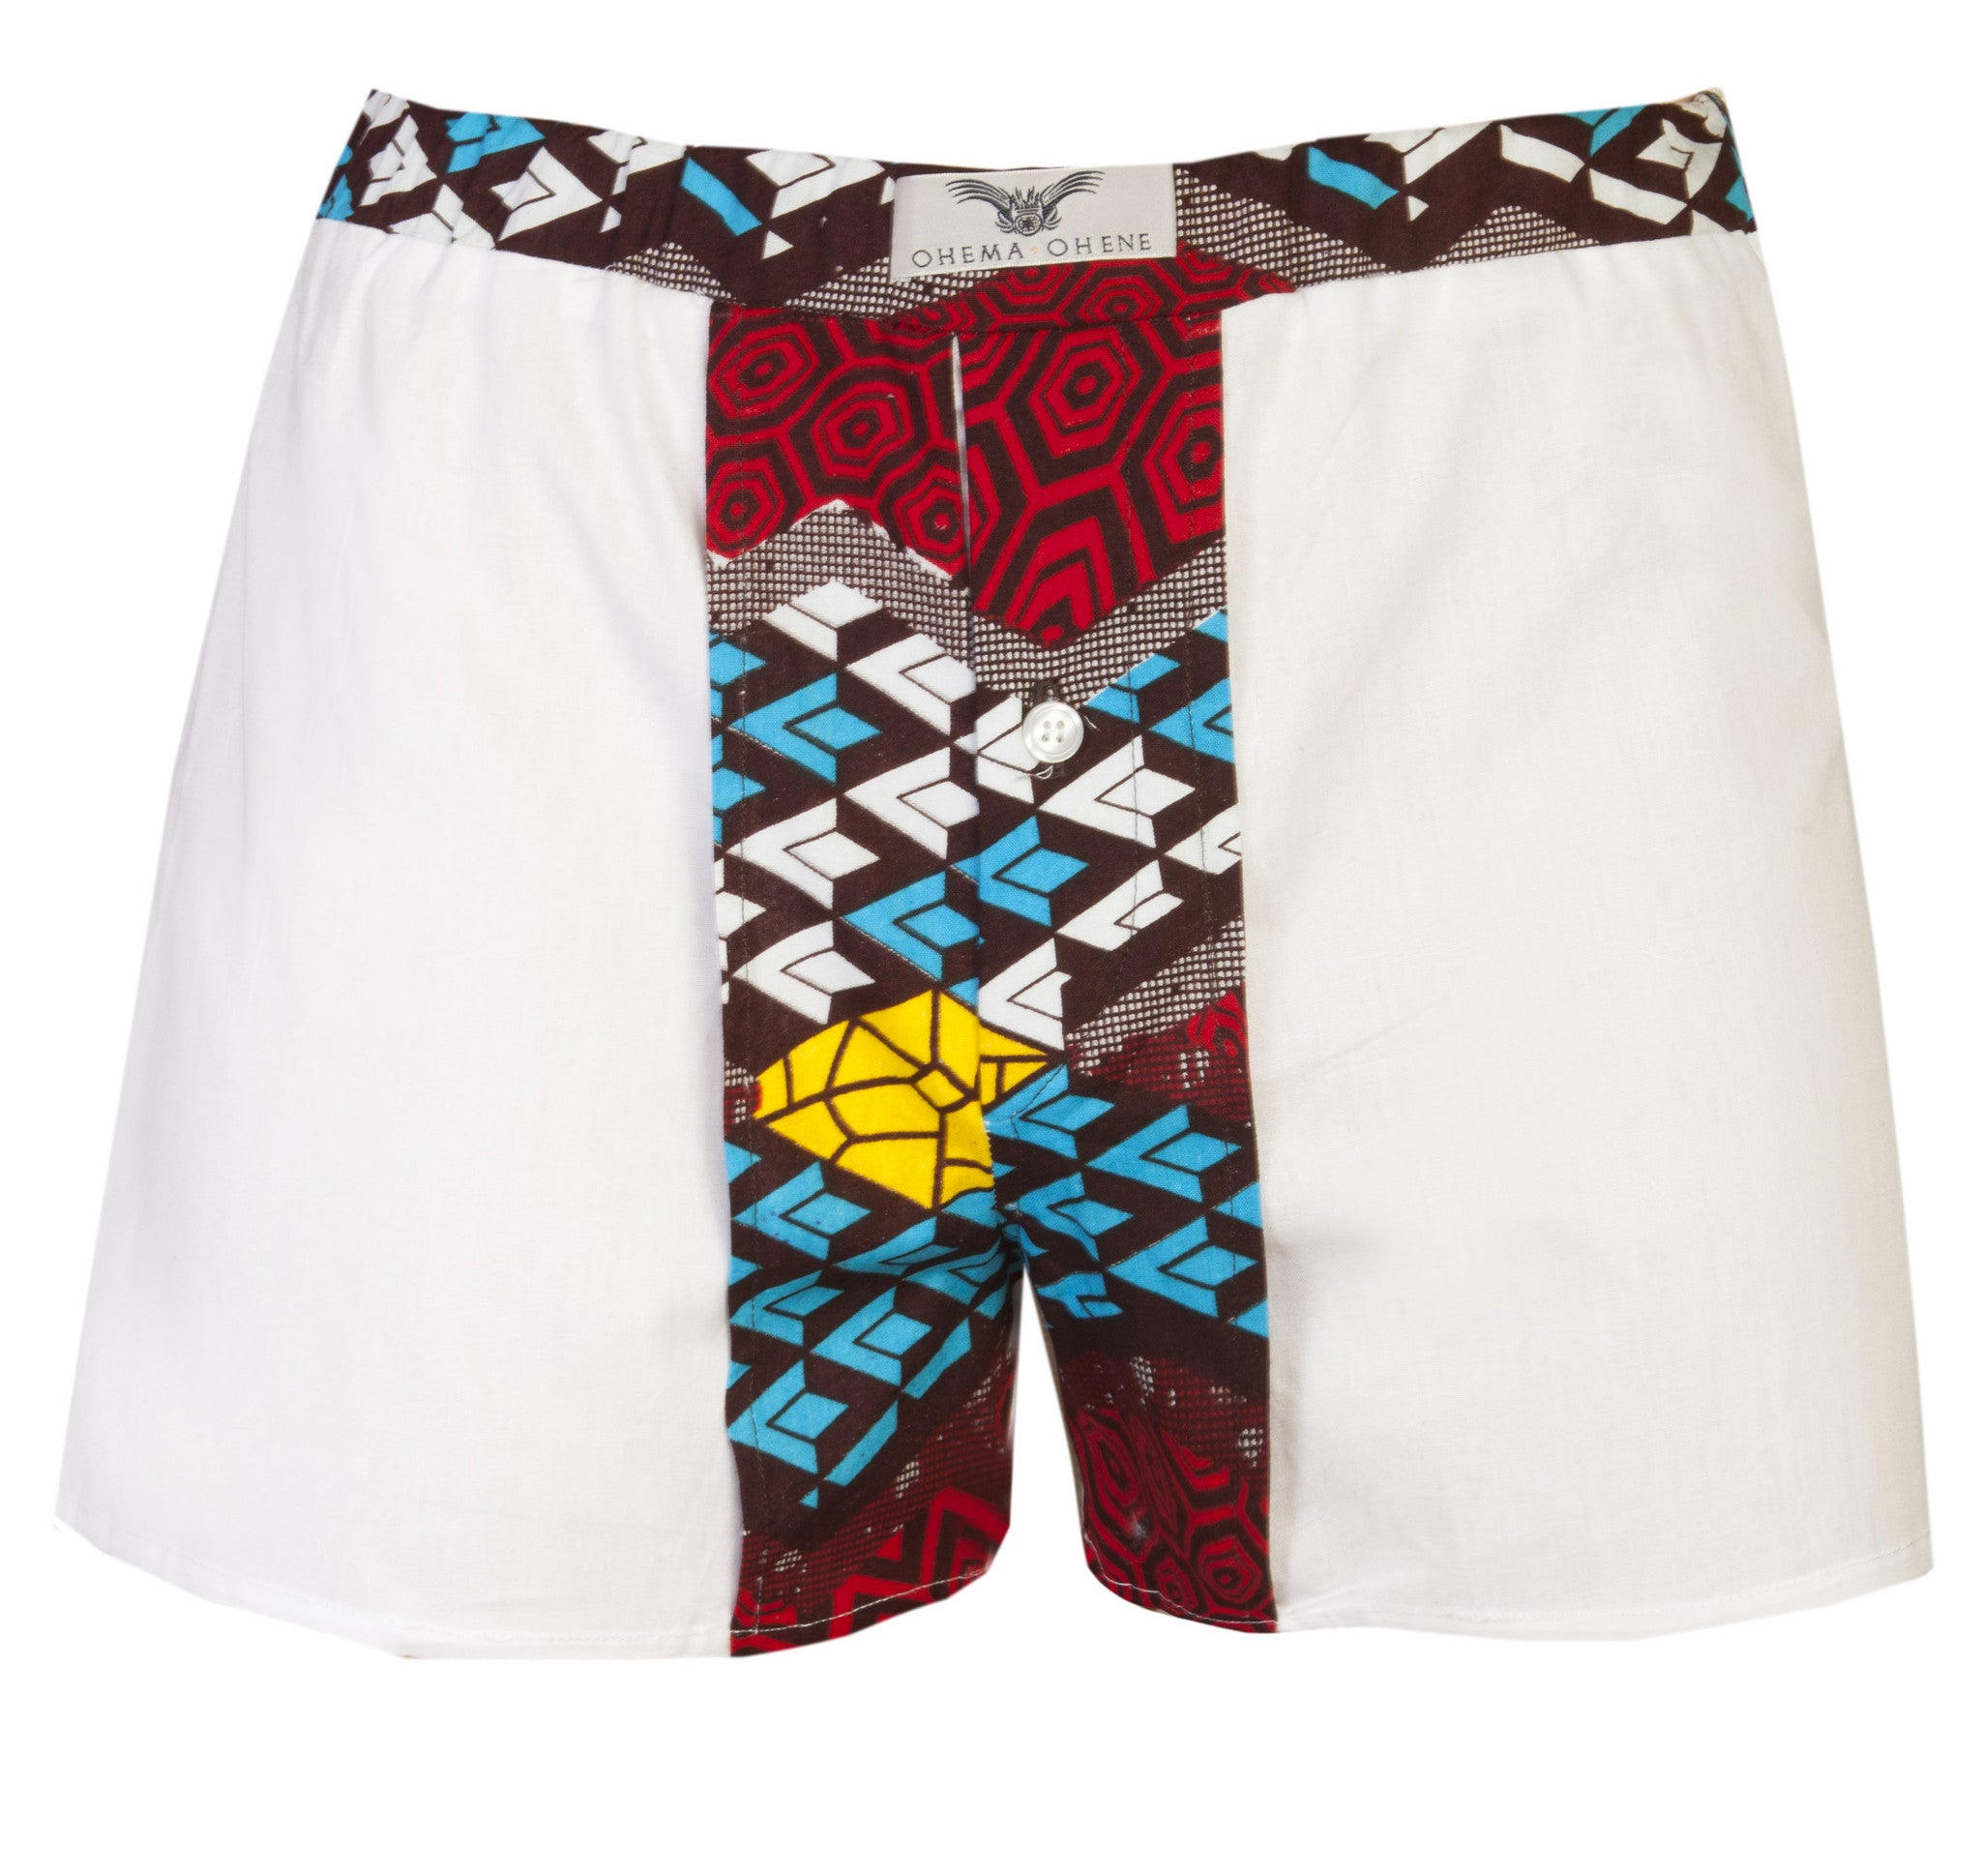 White 2 Pack Boxers Shorts - OHEMA OHENE AFRICAN INSPIRED FASHION  - 3